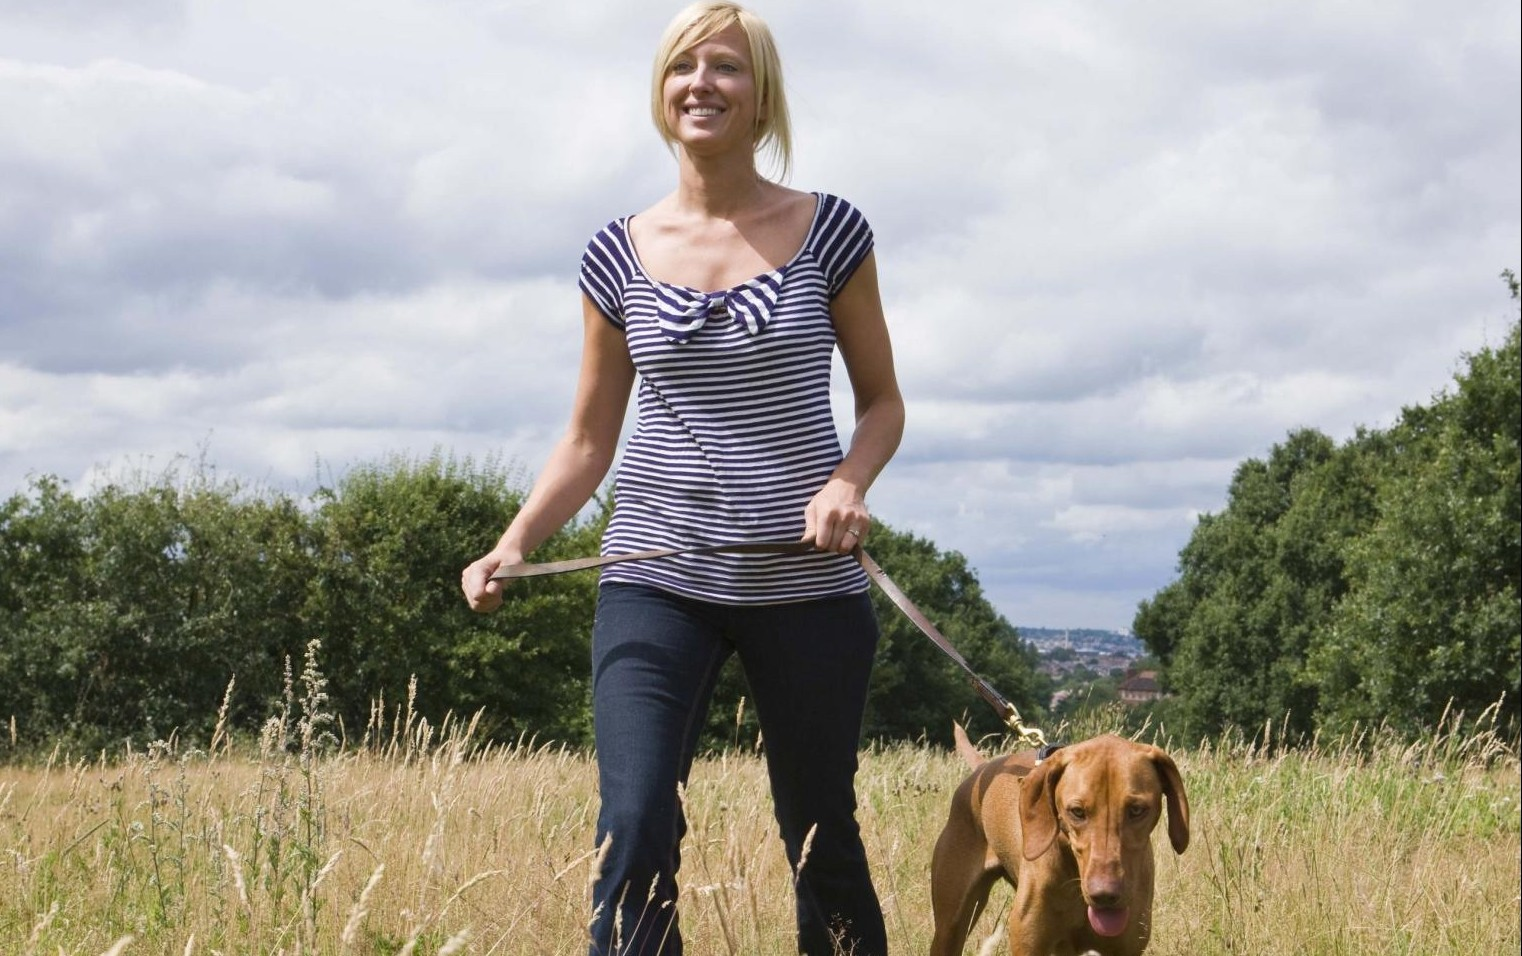 CASES:  Walking a  dog in a field prompted a planning complaint.